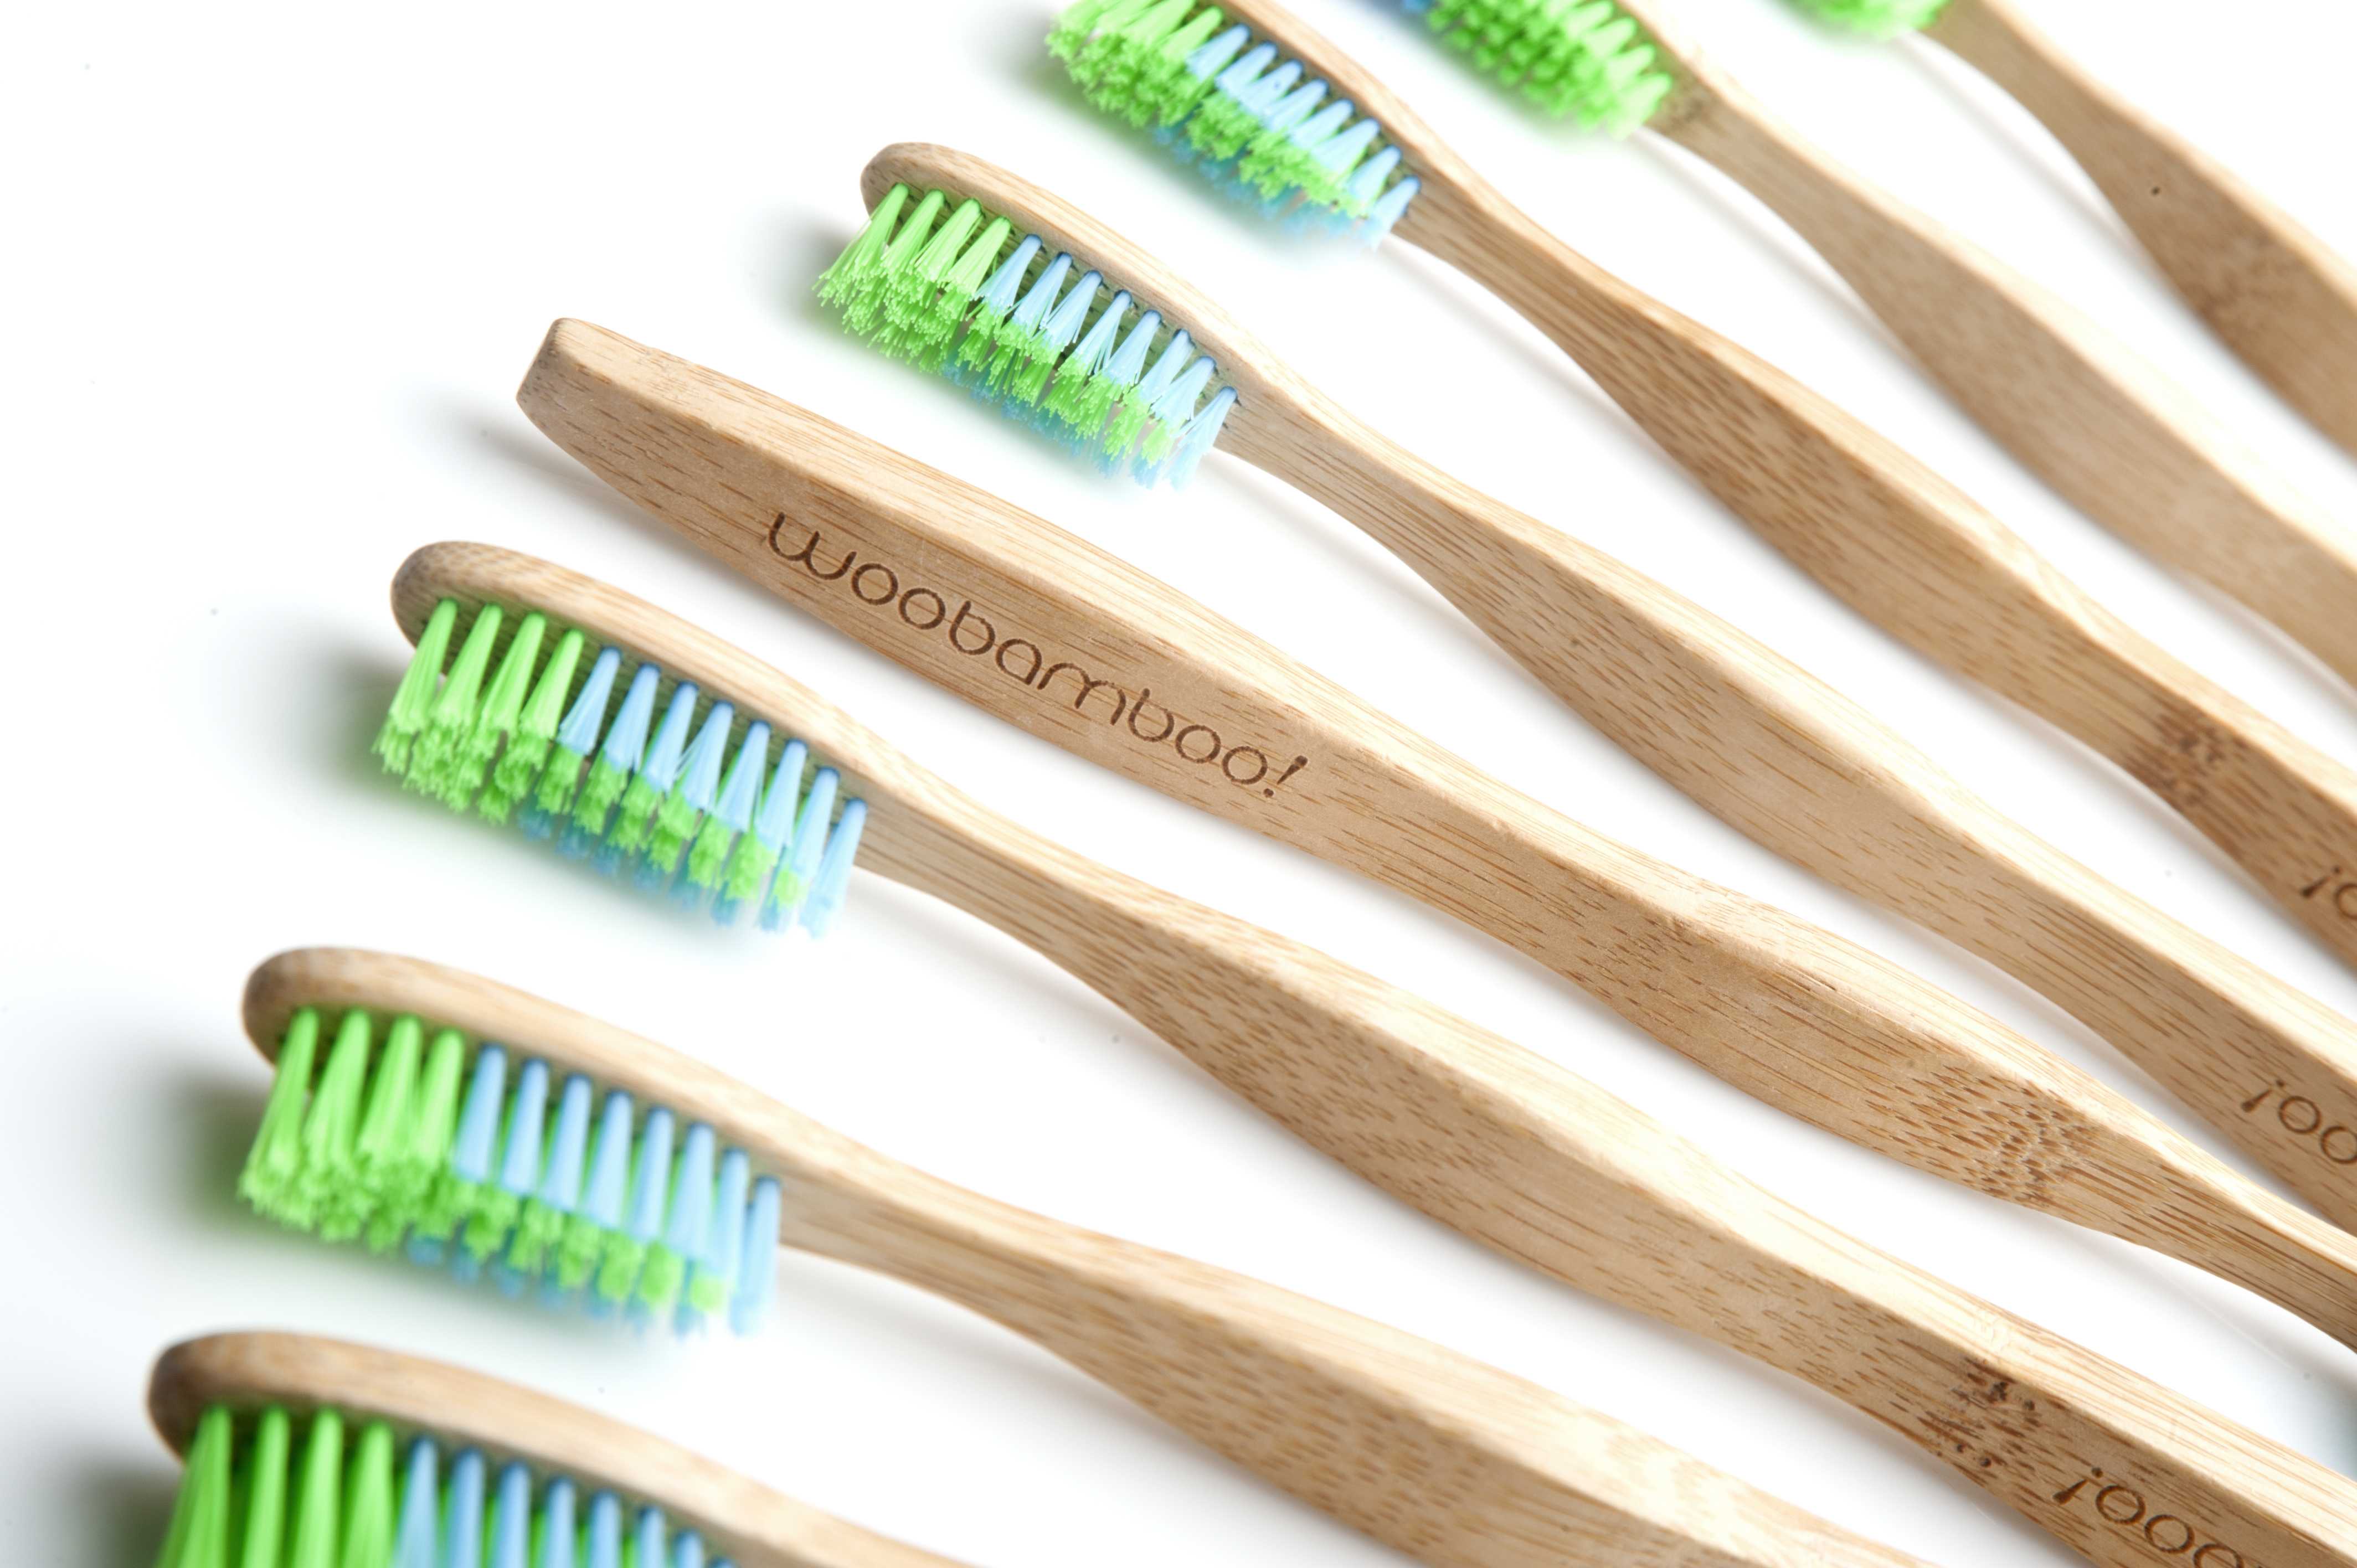 WooBamboo – The Solution to Plastic Toothbrushes